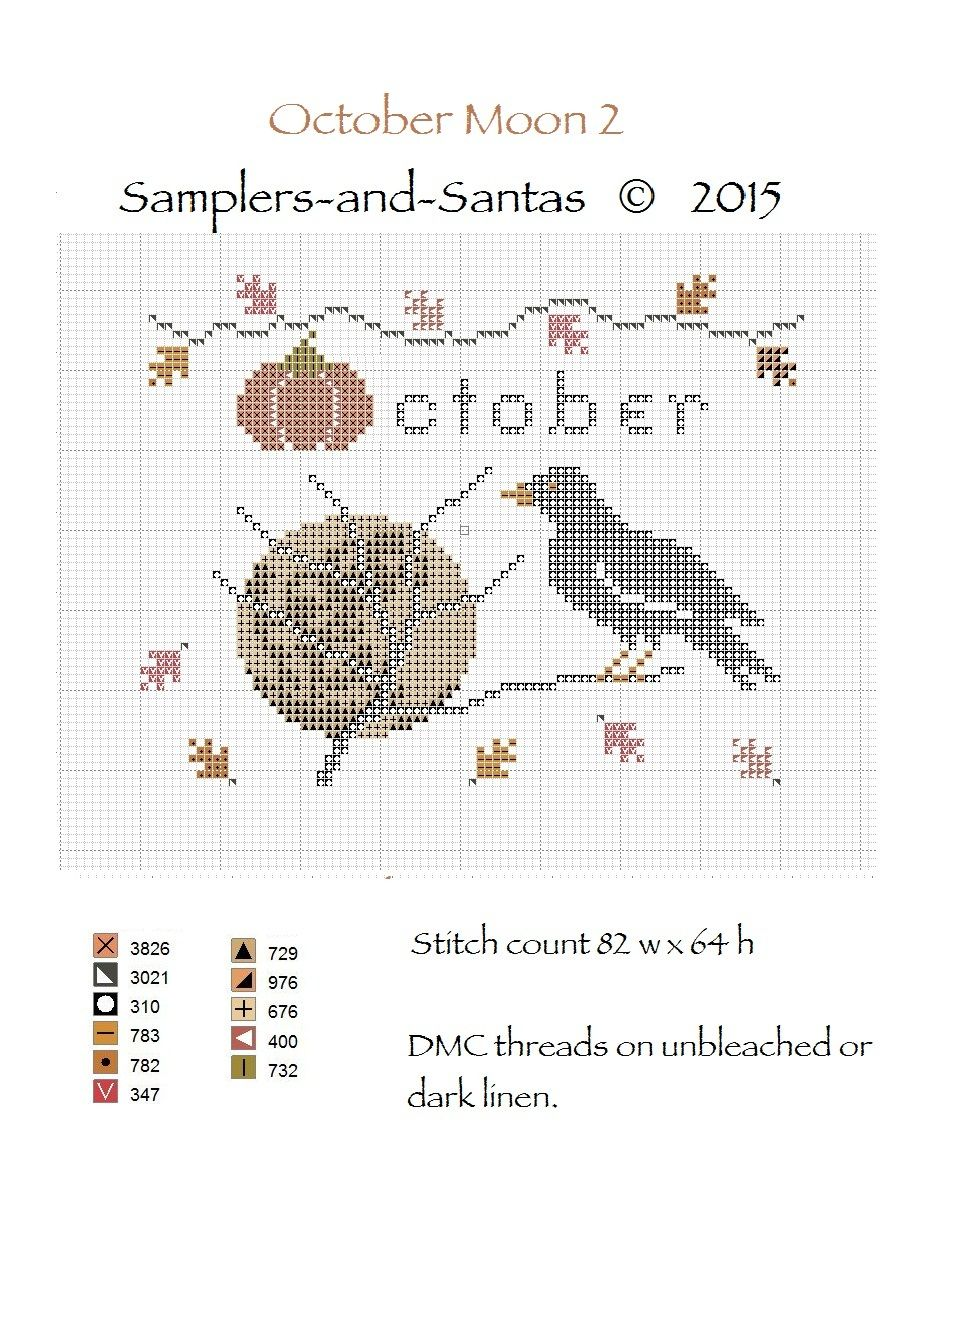 NEW Halloween Treats Cross Stitch Kit and Pattern from The Bee Company